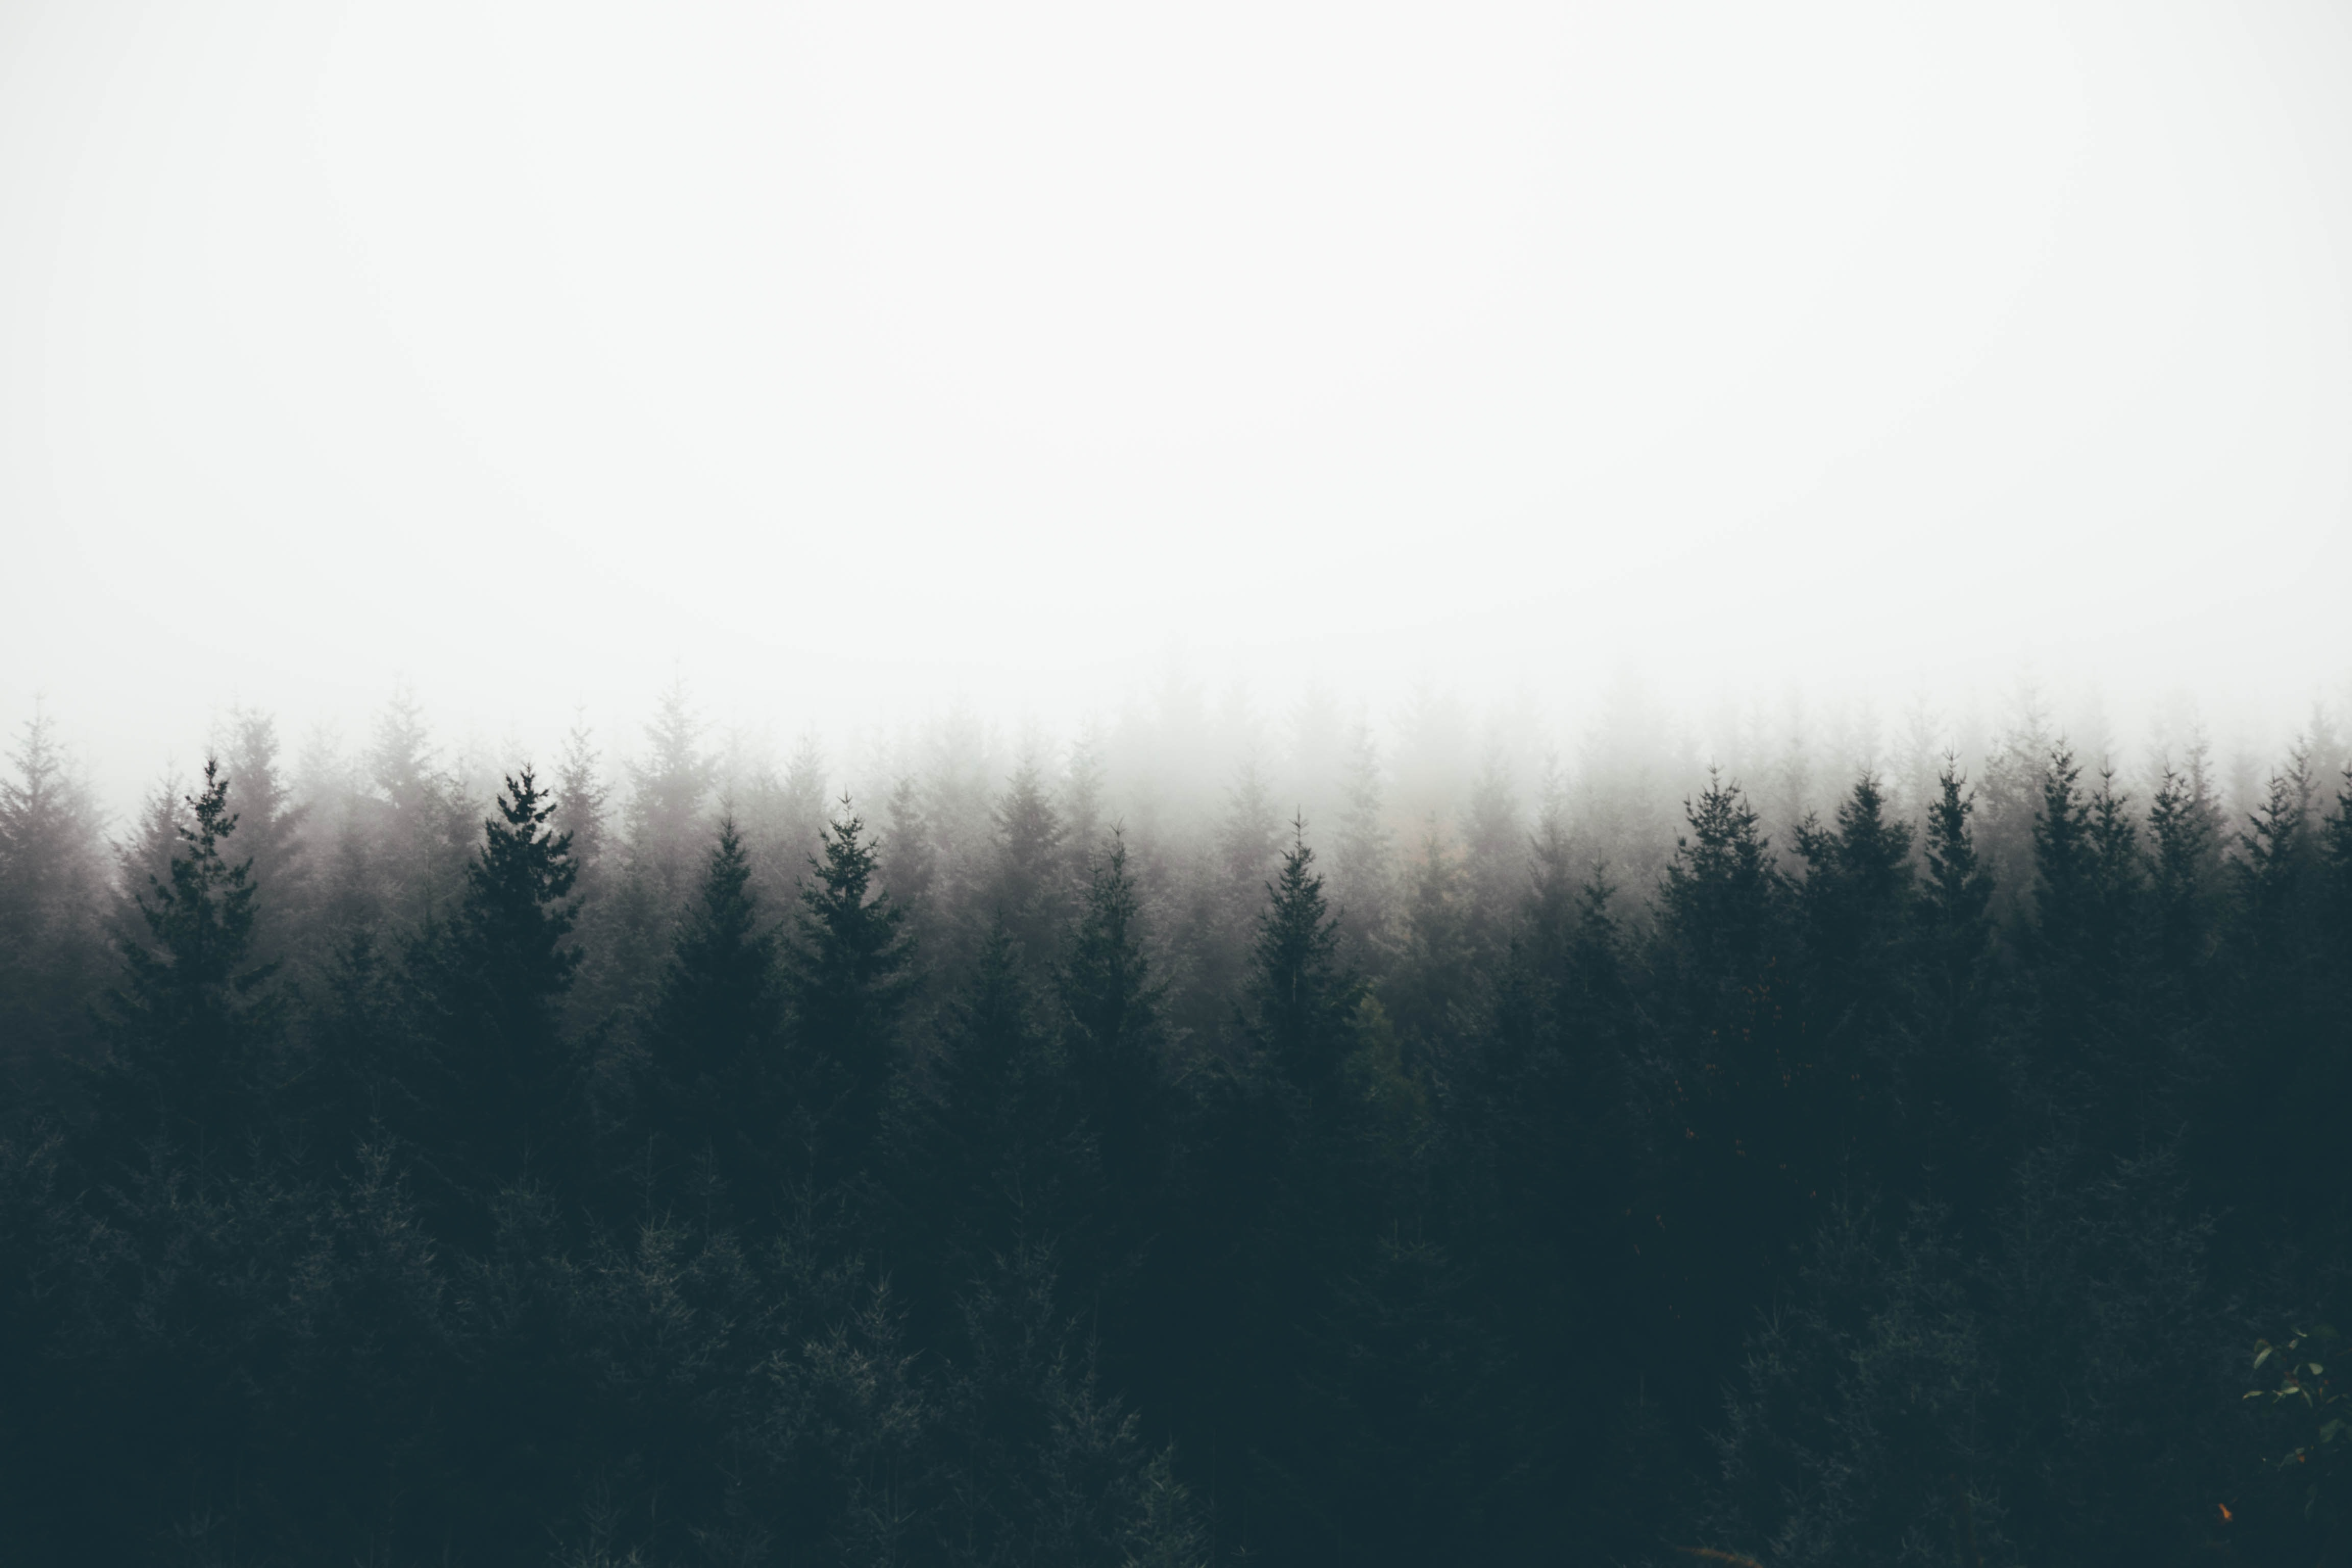 silhouette of trees covered by fogs